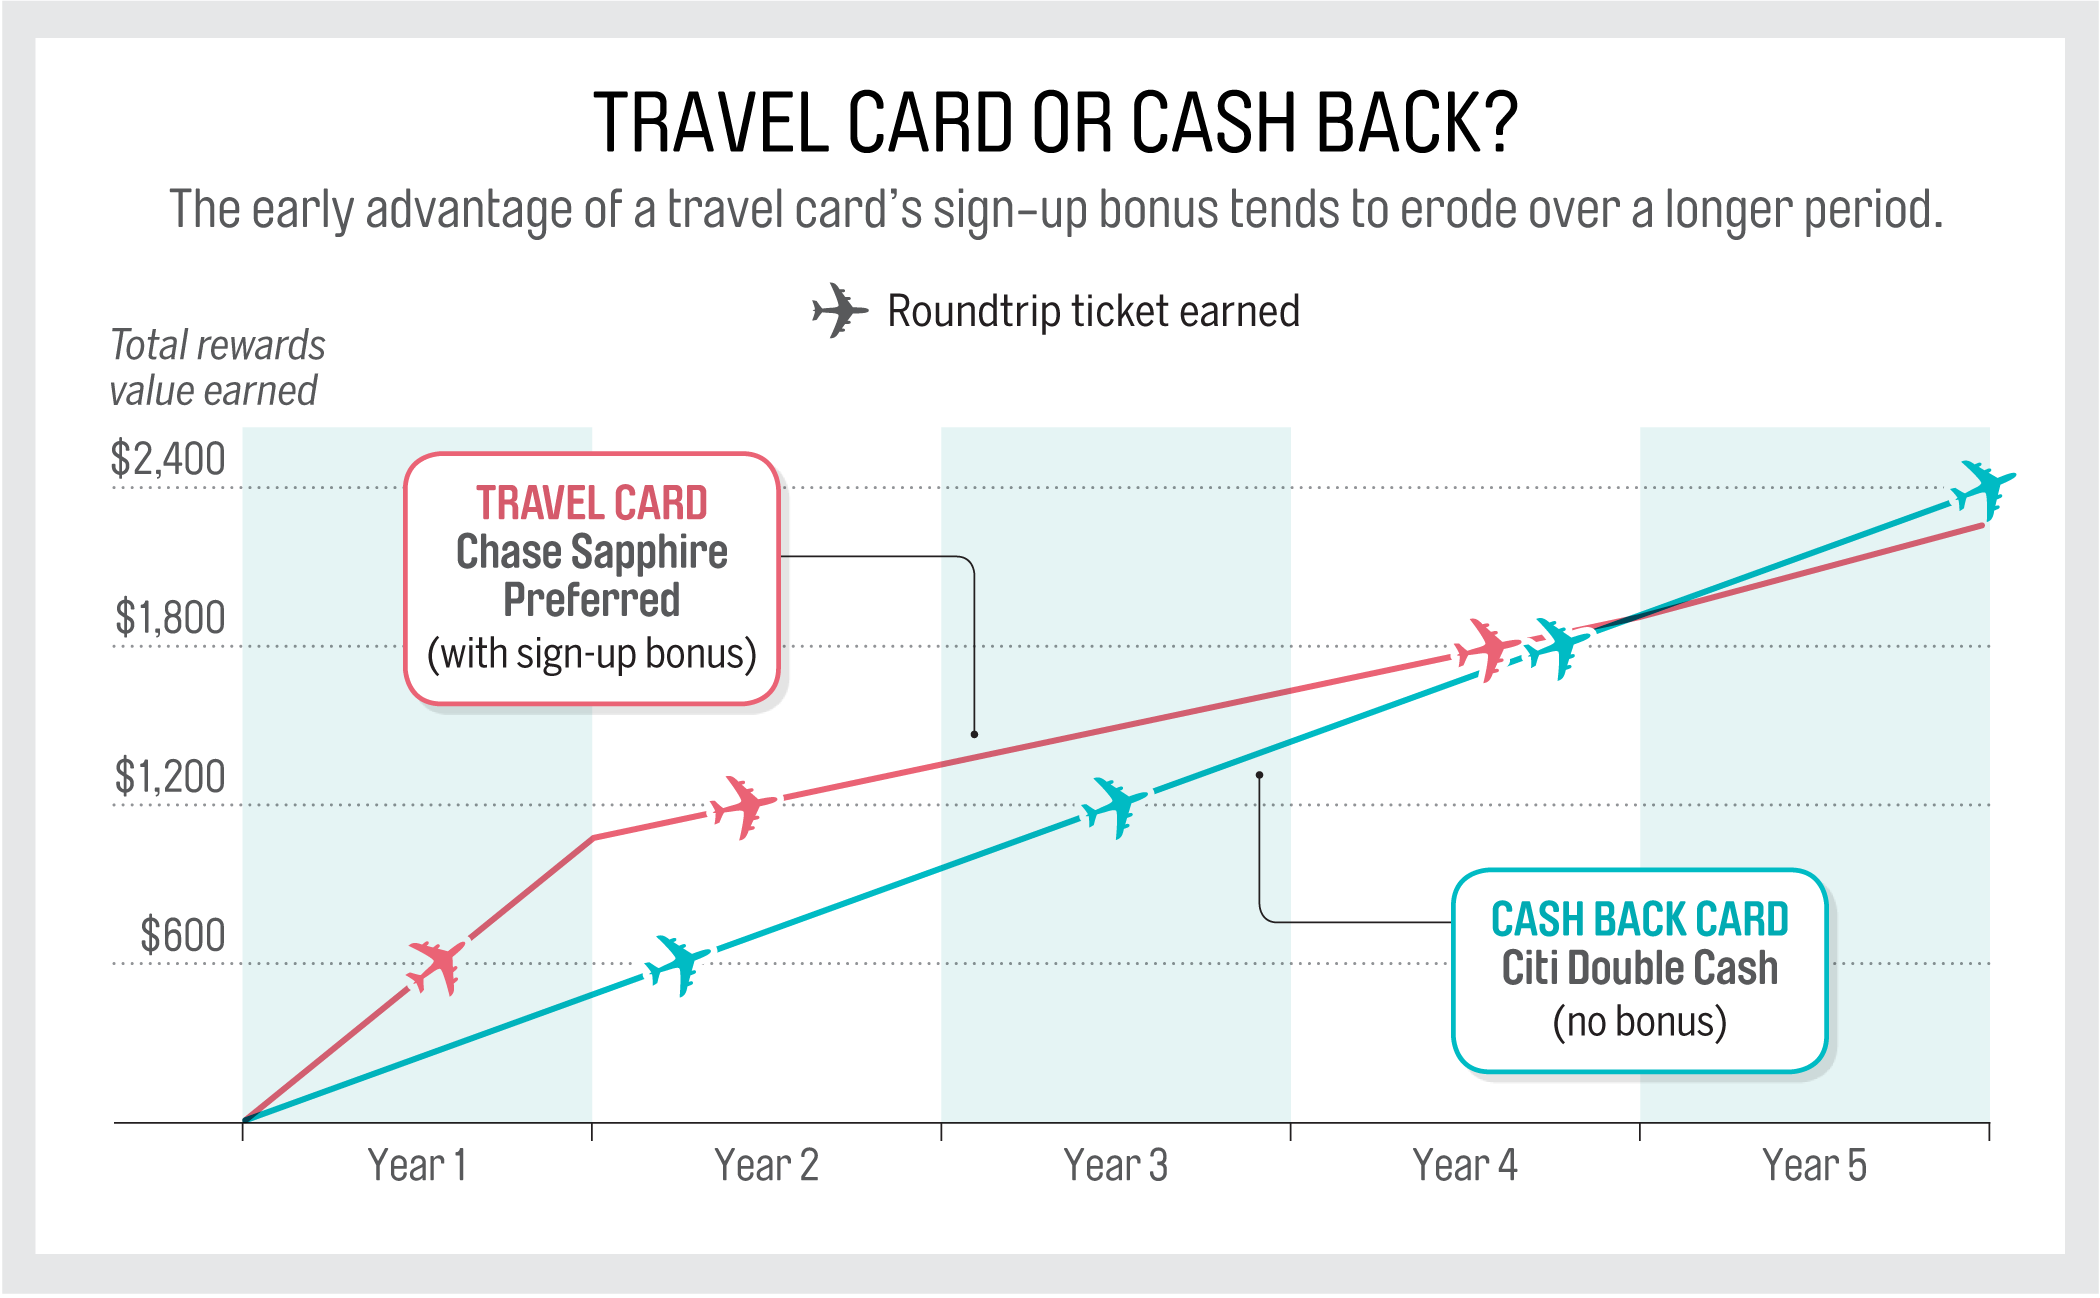 NOtes:Â Assumes $2,000 a month spending, including $500 on travel and restaurants, and roundtrip ticket price of $600. Chase purchases made through Ultimate Rewards portal. Factors in annual fees but not foreign-transaction fees. SOurCE:Â Money calculations